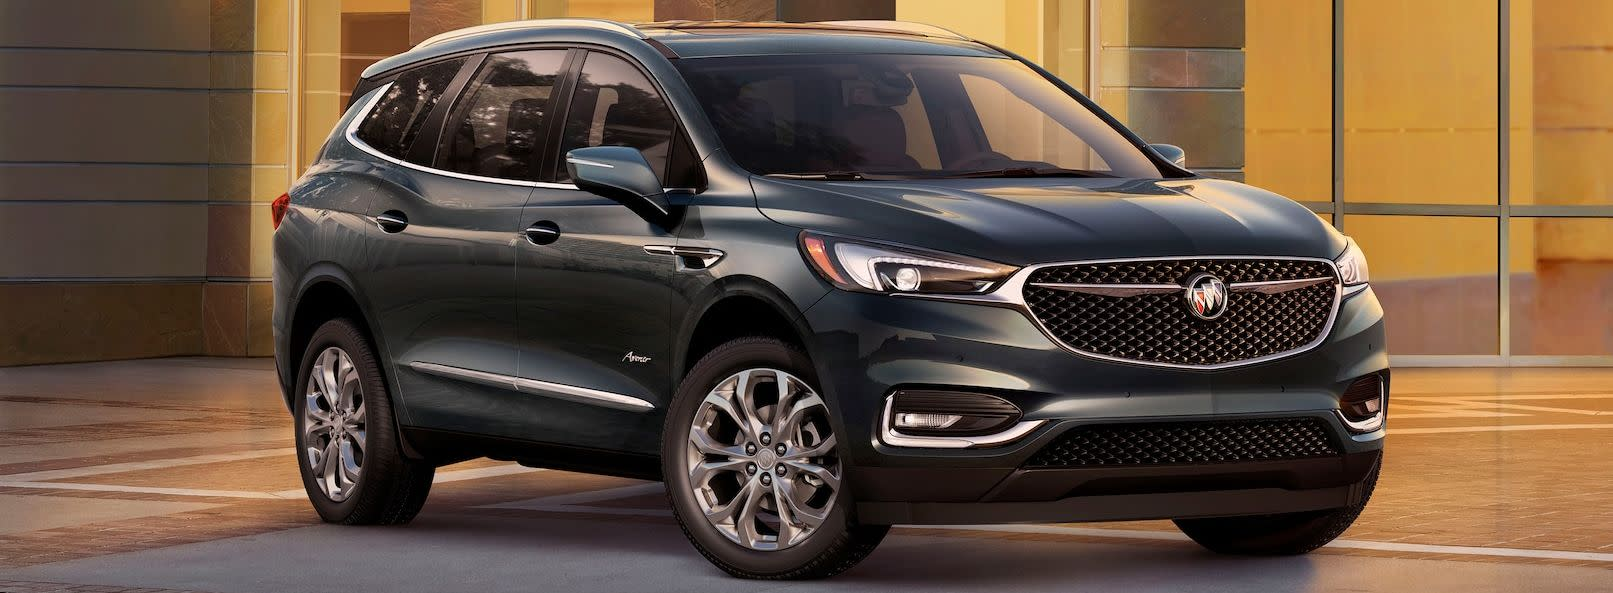 Buick Enclave Lease >> 2018 Buick Enclave Leasing Near Austintown Oh Sweeney